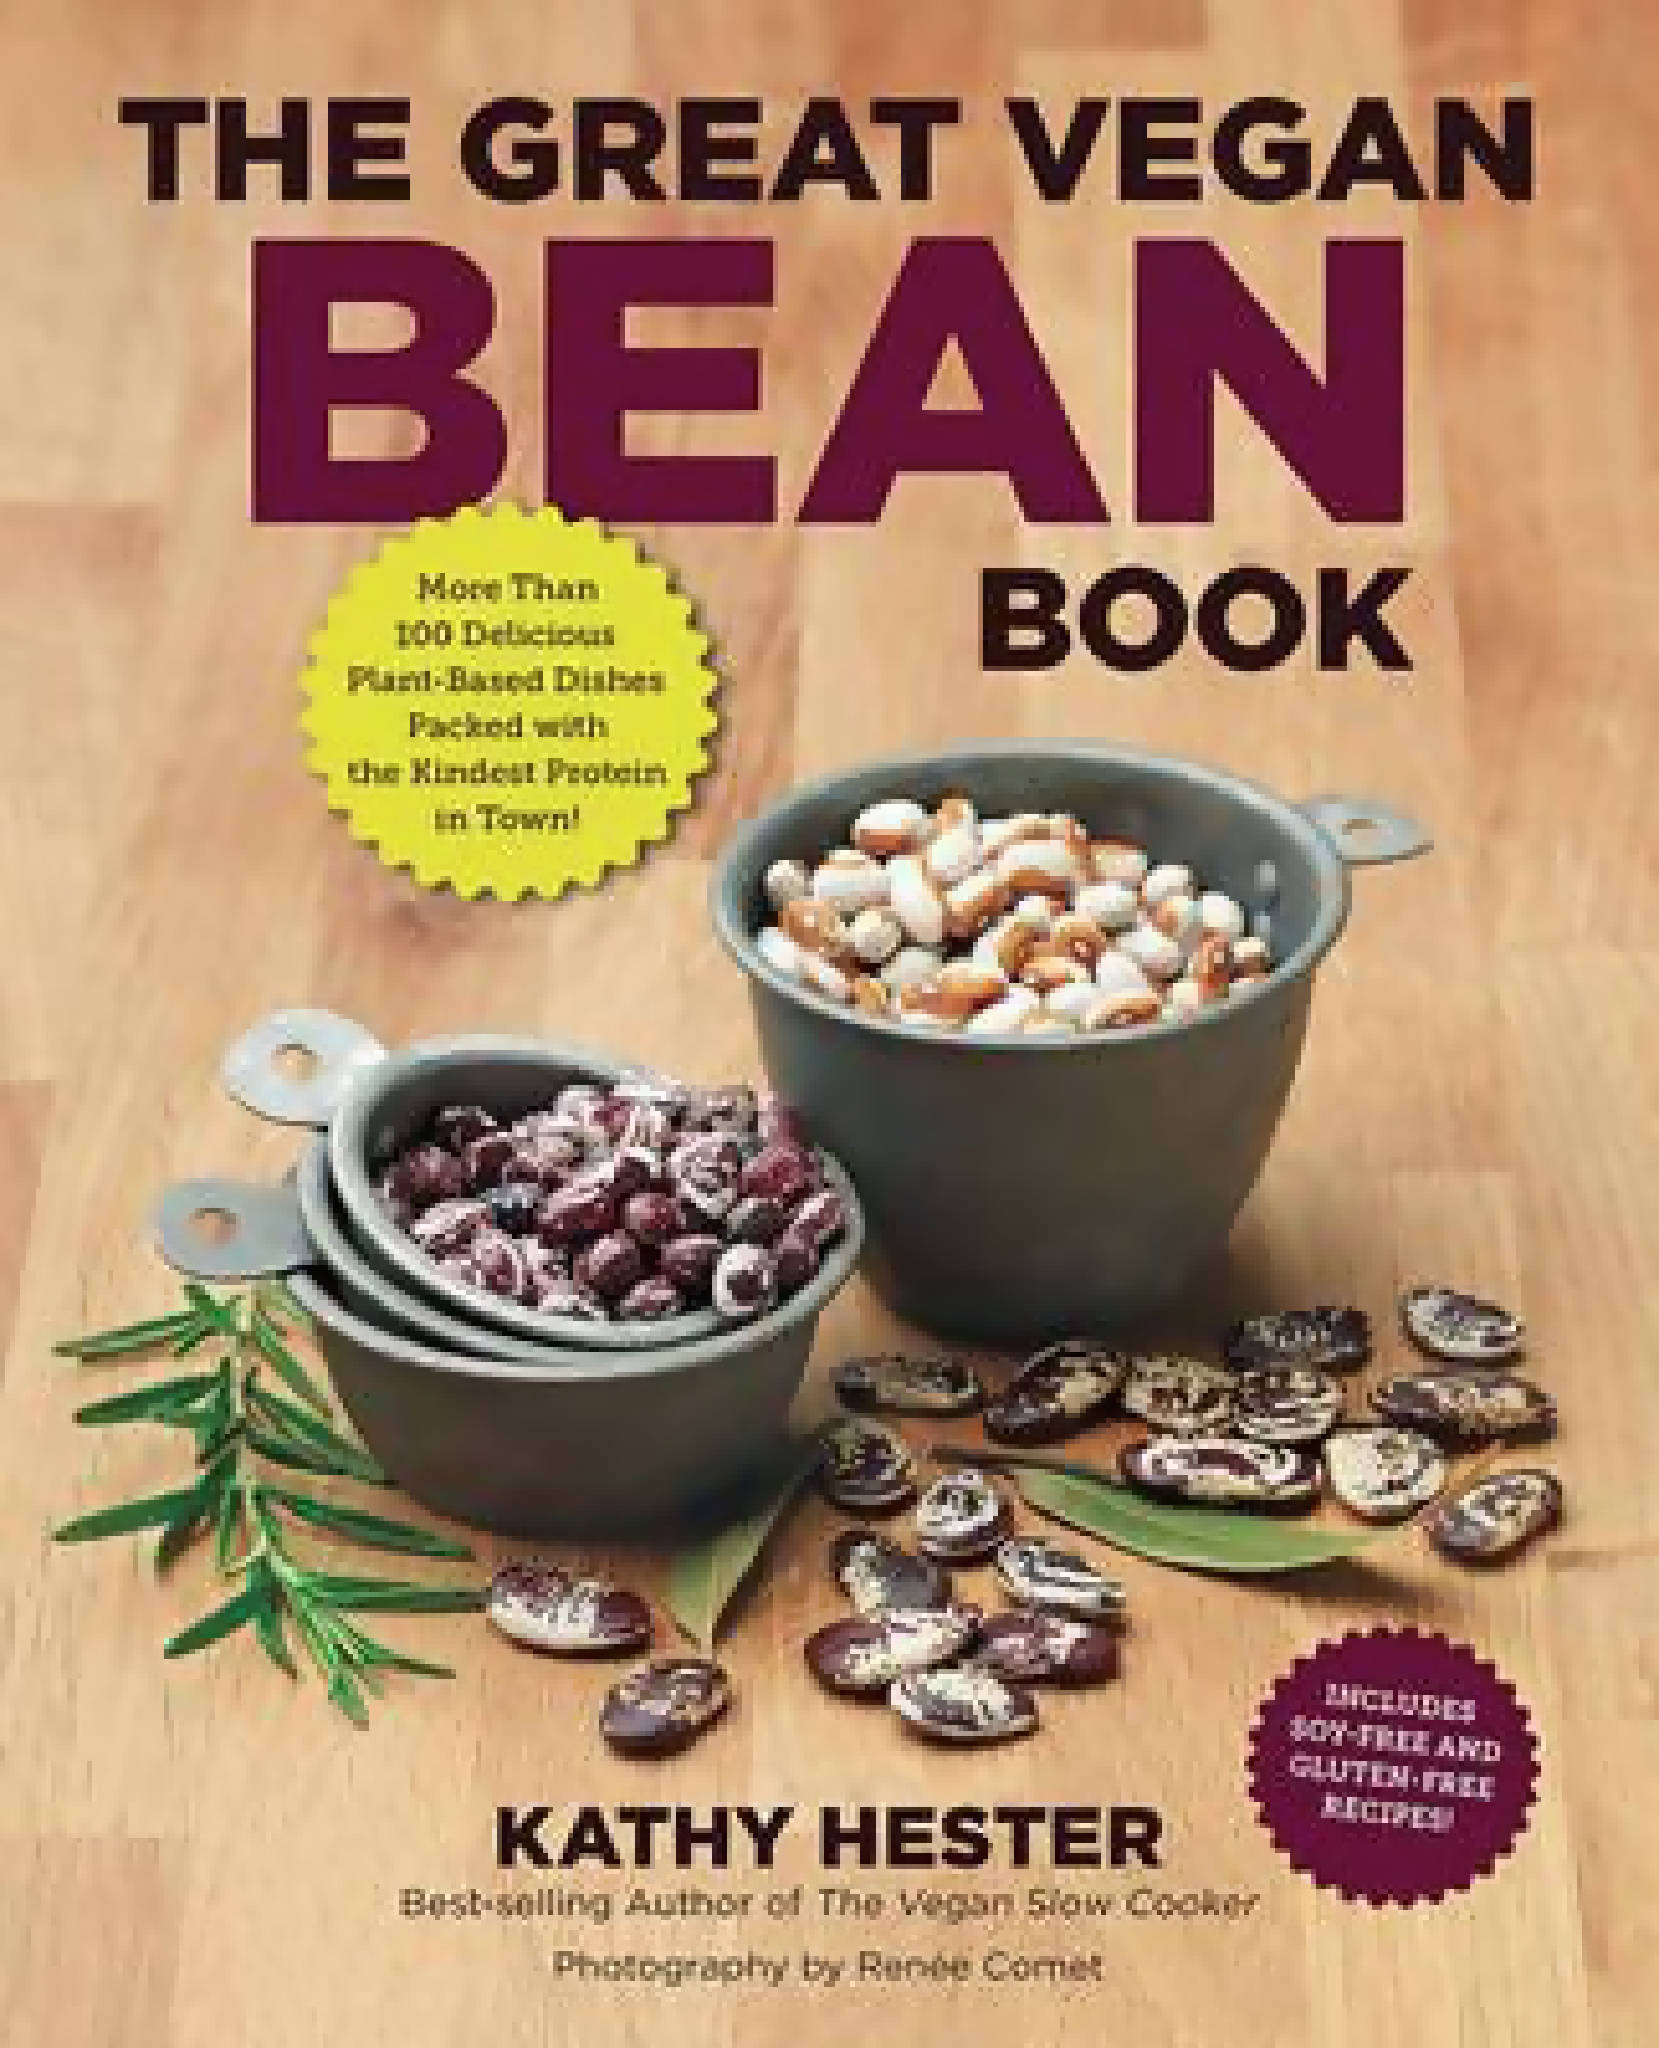 Great Vegan Bean (The) by Kathy Hester